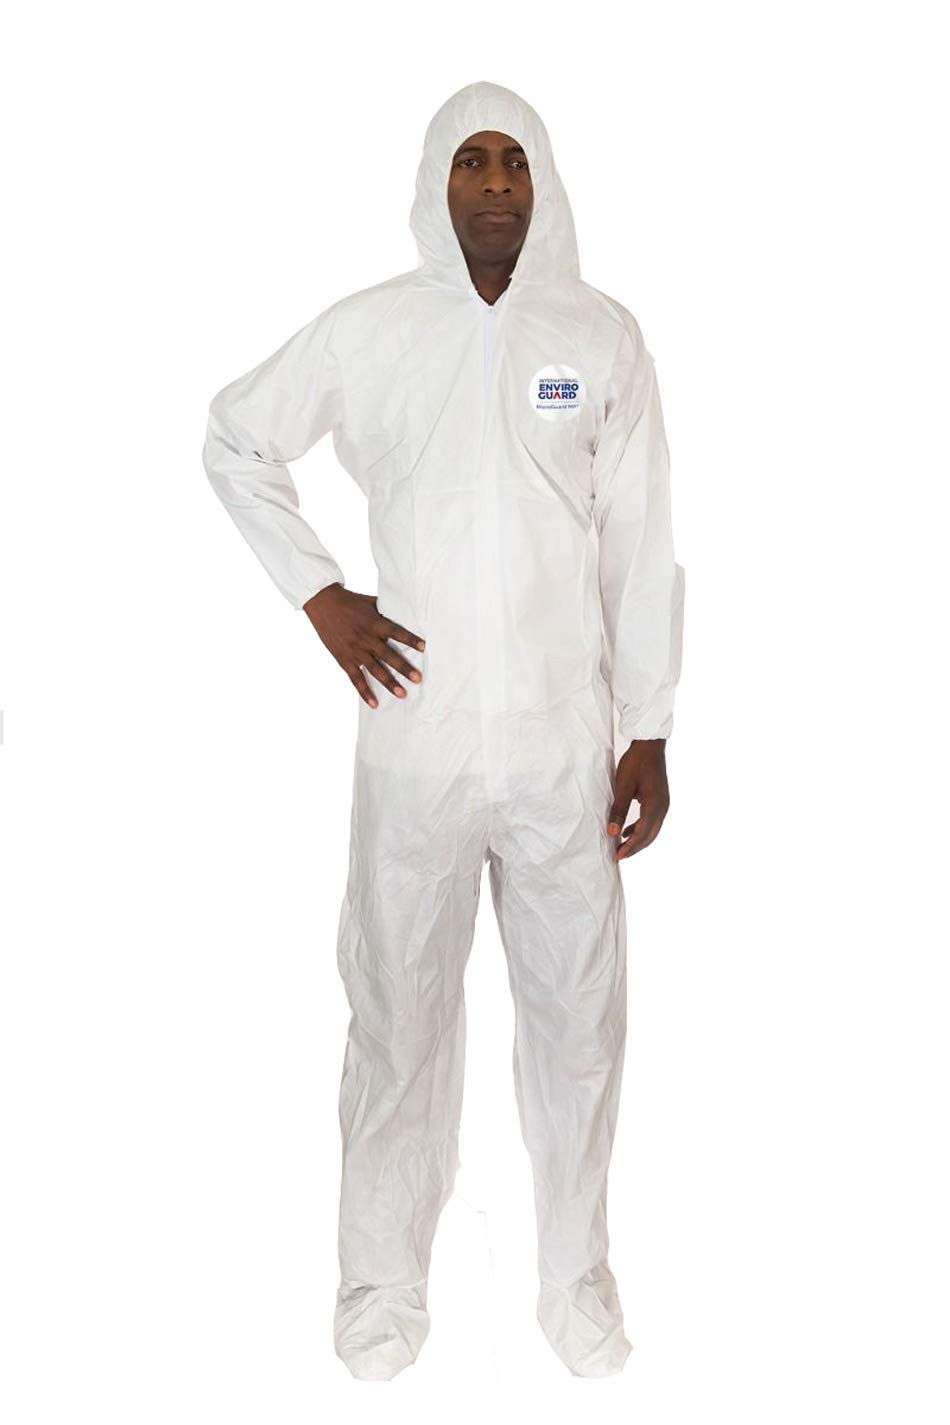 Microguard MP Microporous (White) | Particulate & Splash Protection/Disposable Hazmat Suit with Elastic Sleeves for Paint and Particulates (Case of 25) (5XL, Elastic Wrist, Hood & Boots)